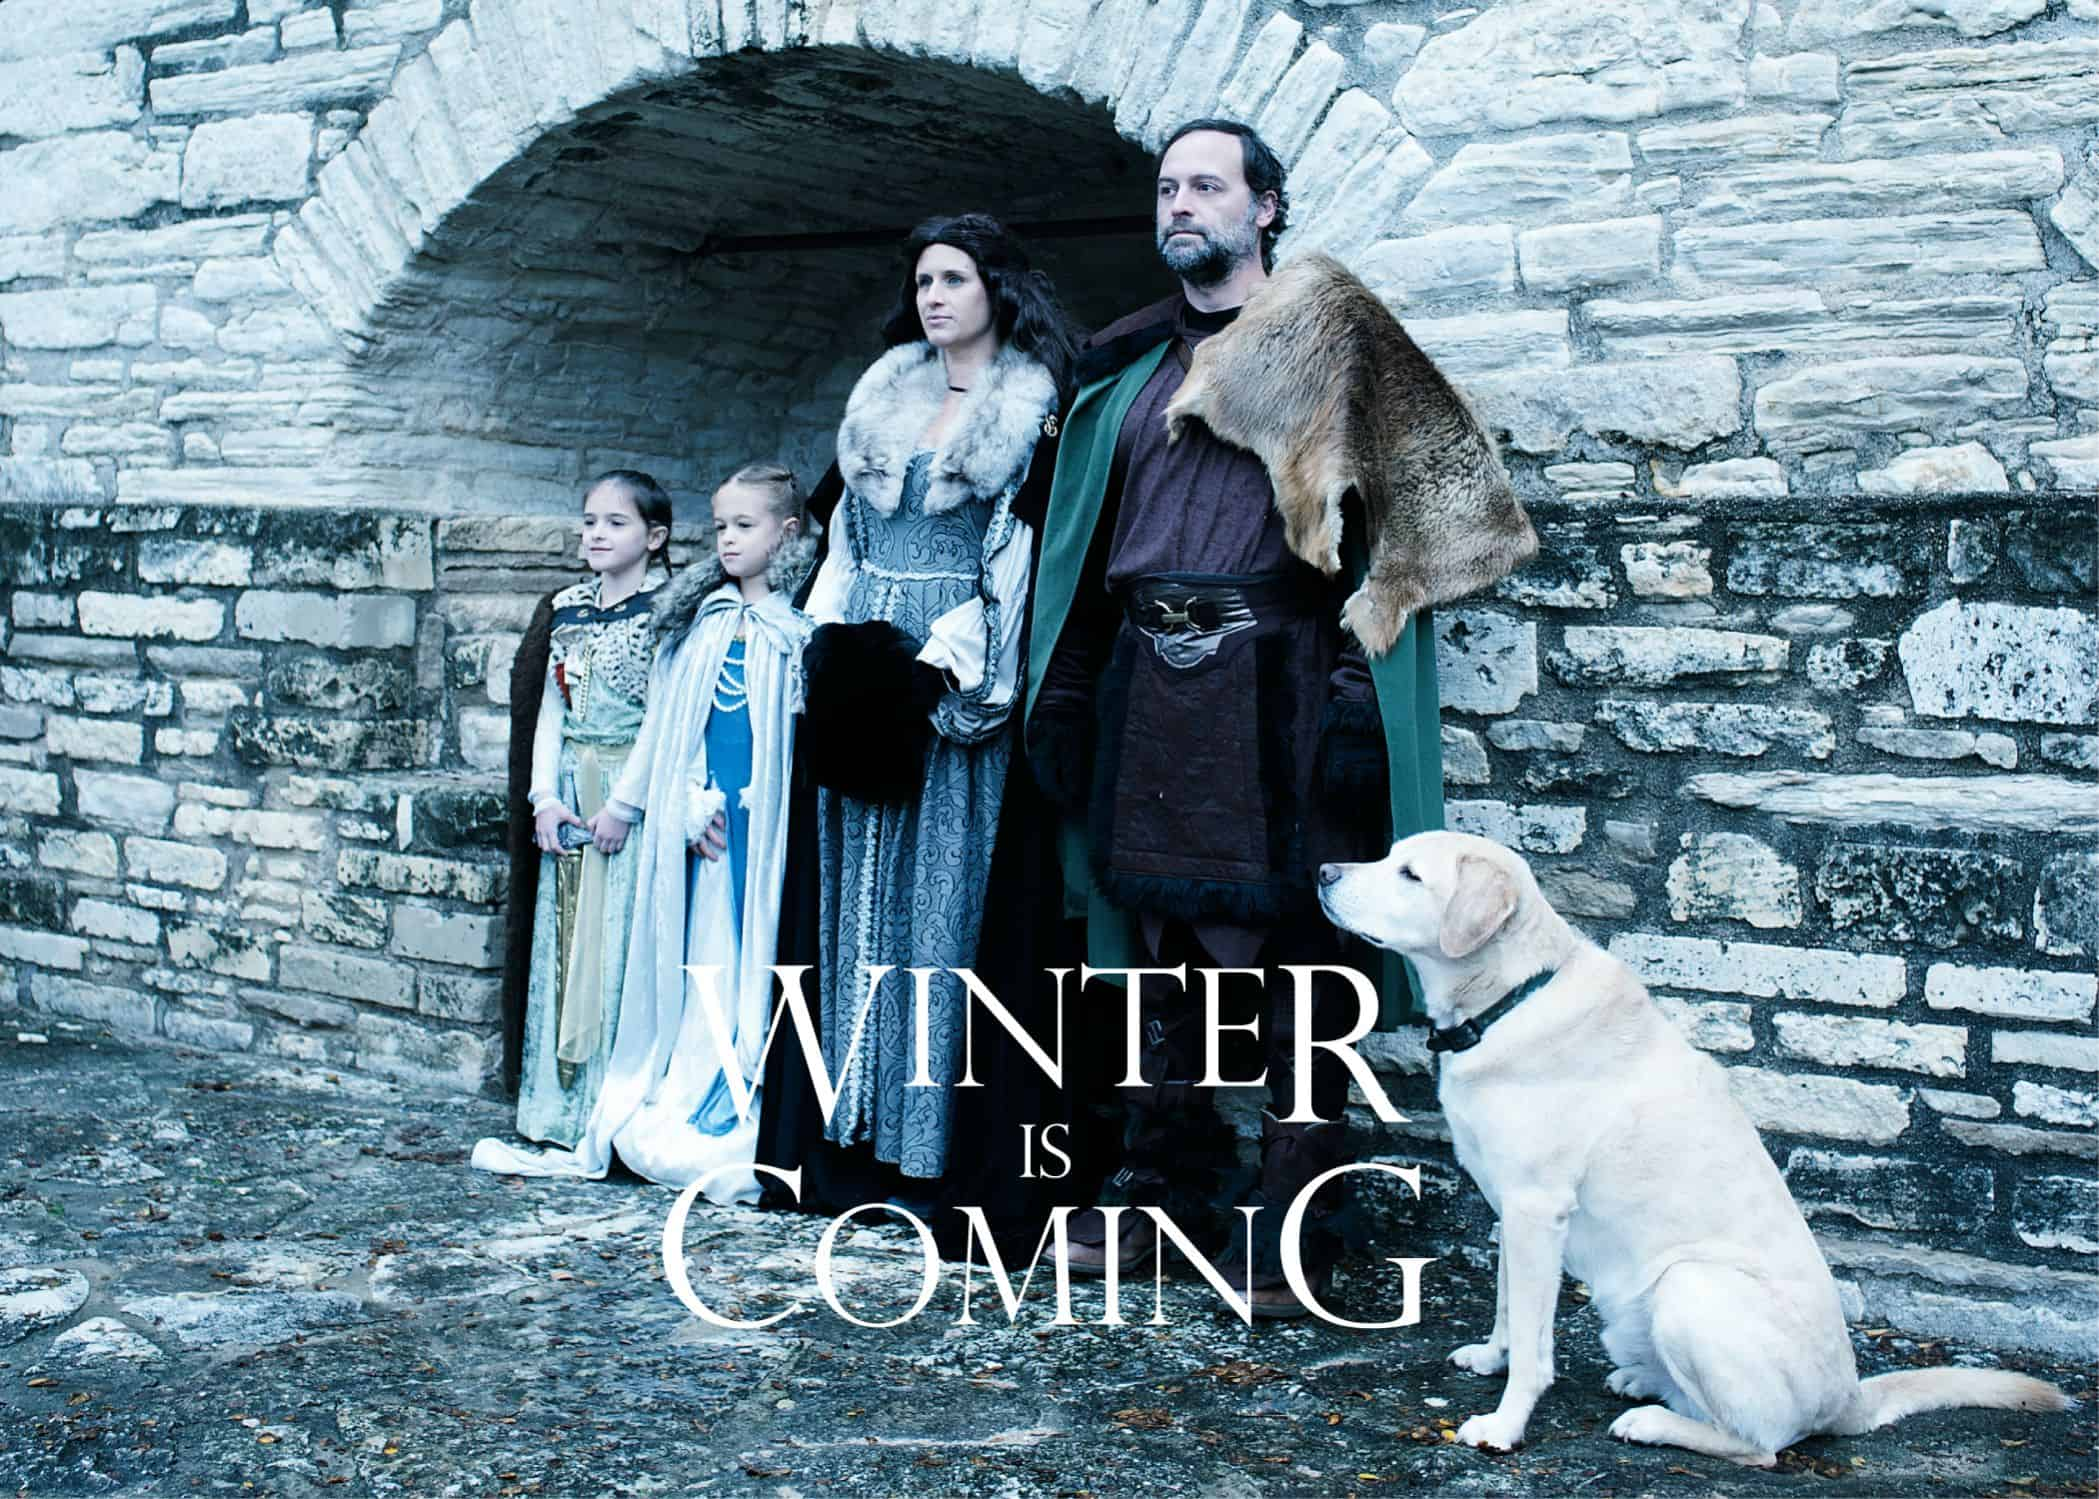 Winter is coming photo